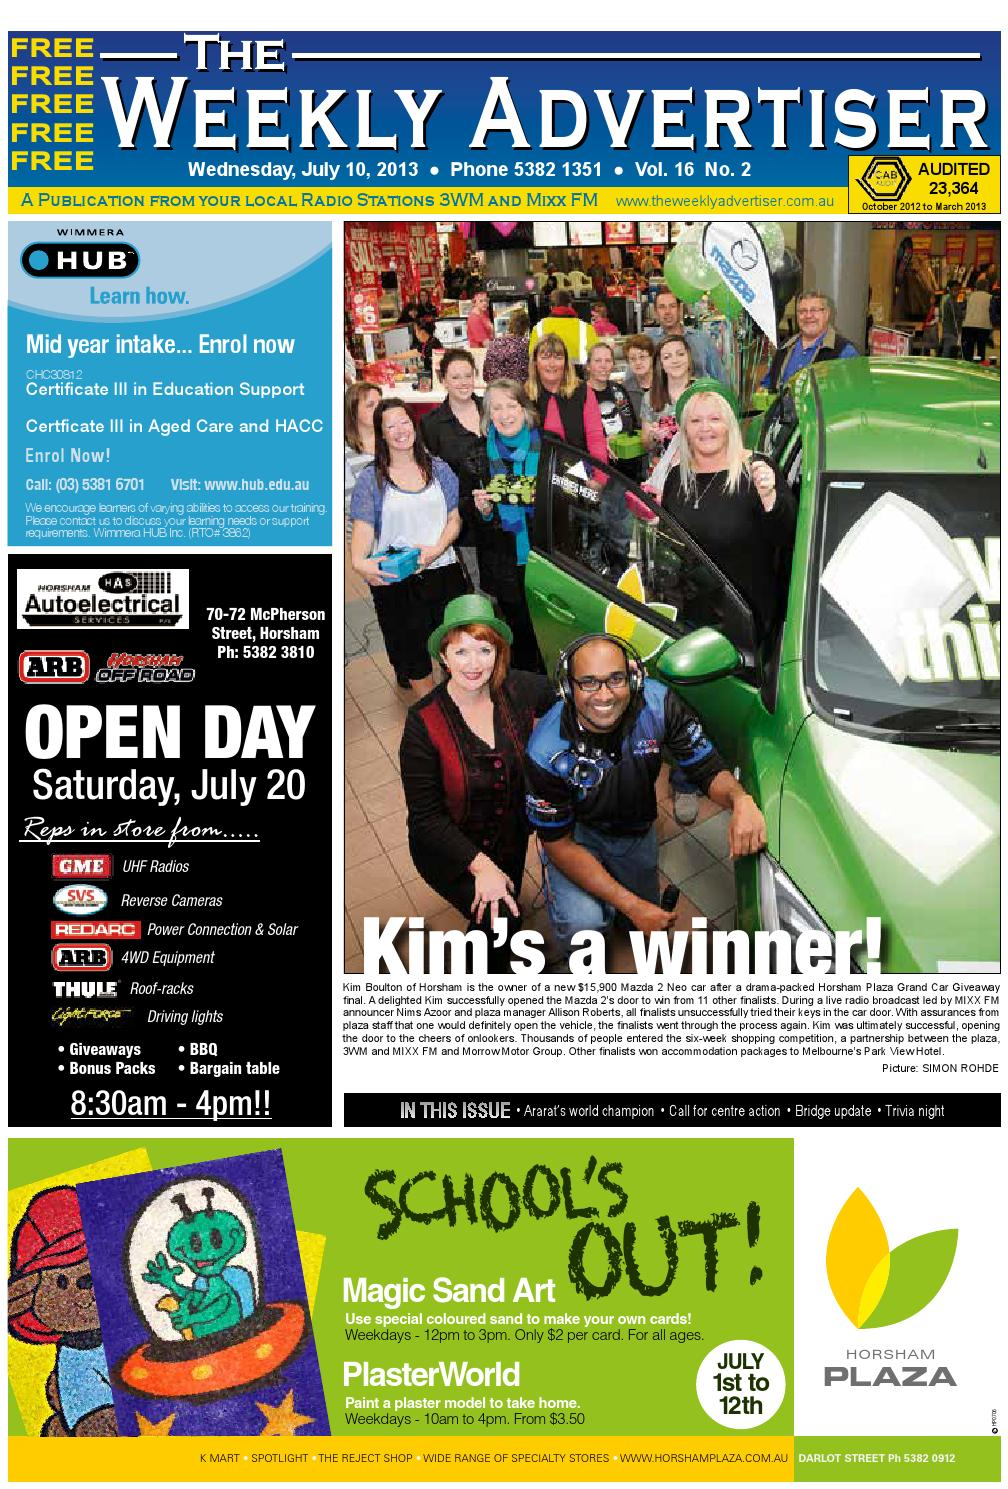 The Weekly Advertiser - Wednesday, July 10, 2013 edition by